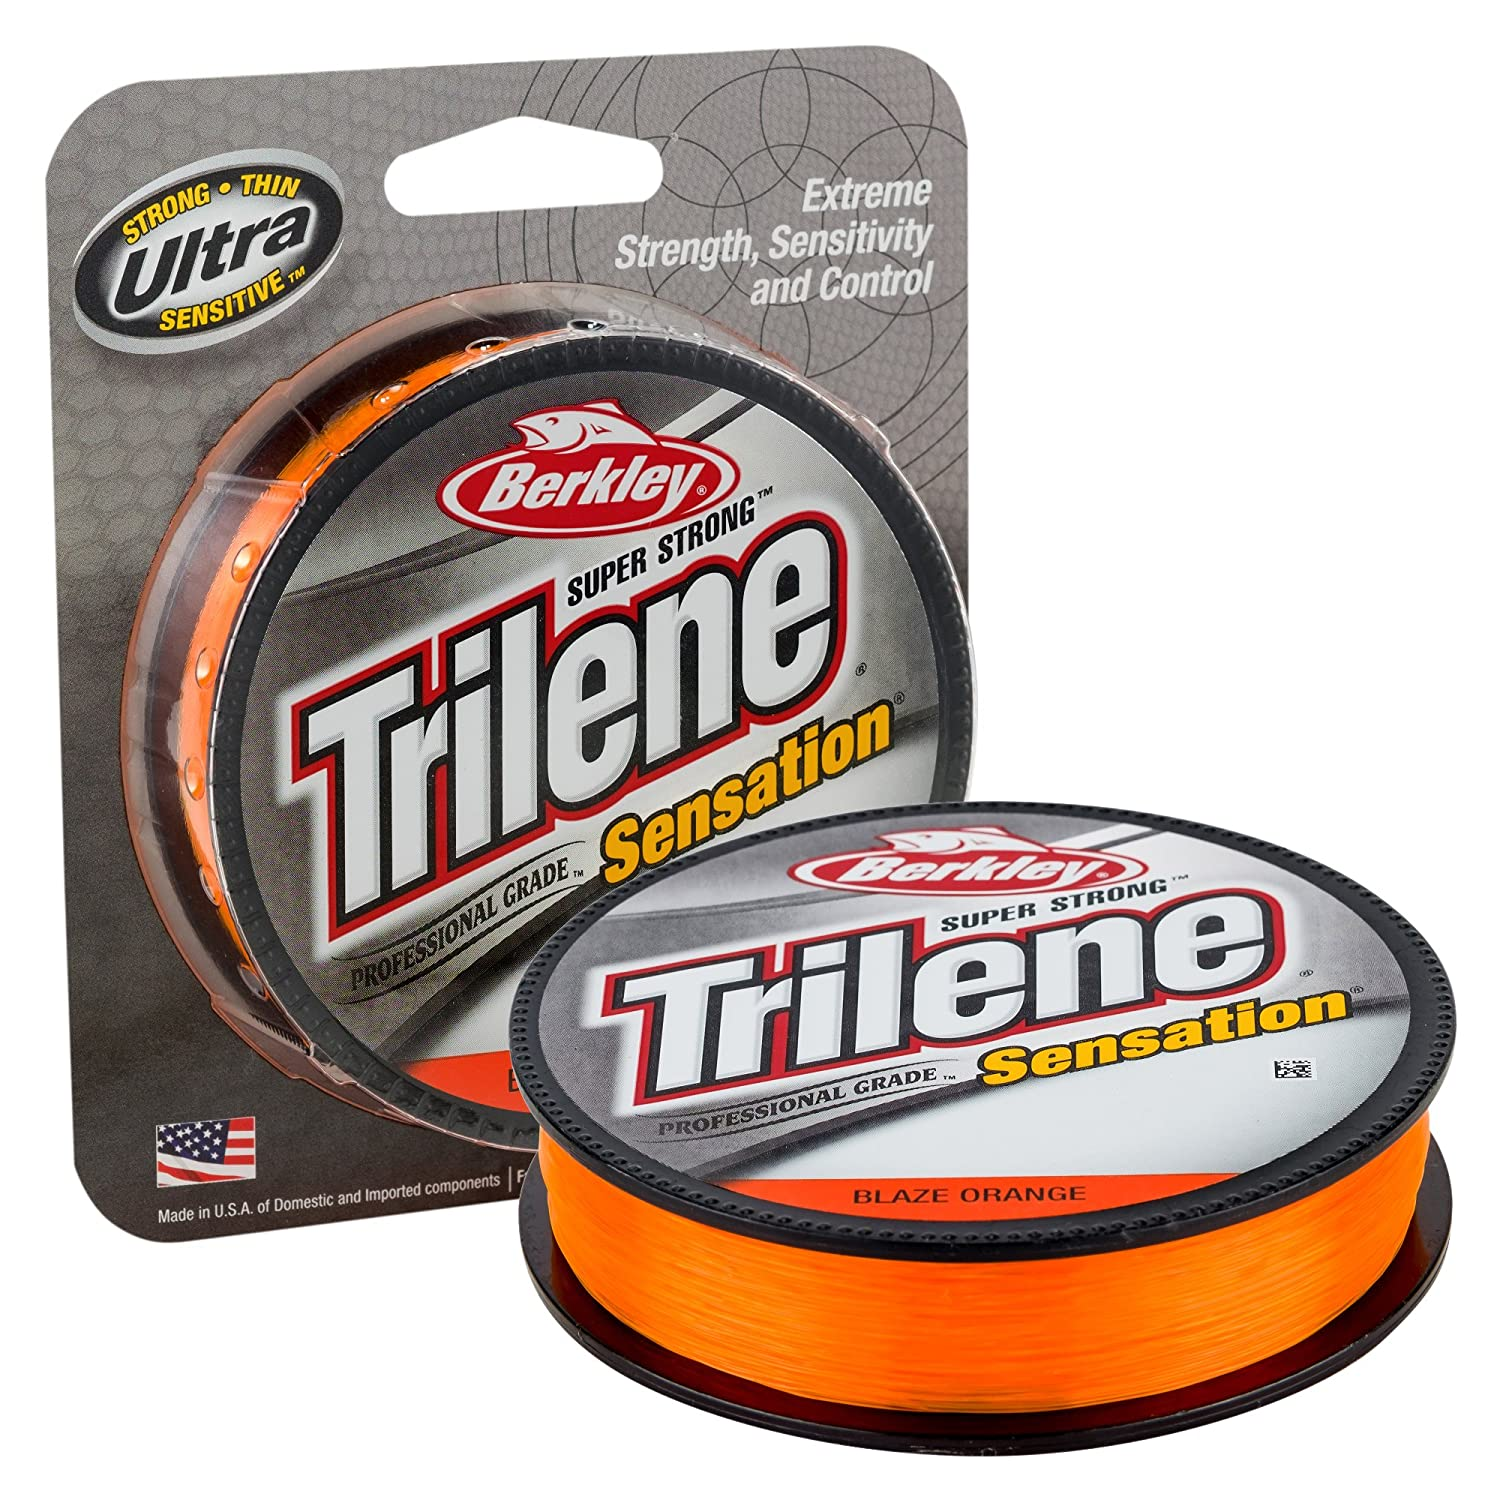 Berkley Snfsn12-80 Trilene Sensation Fishing Bait, Blaze Orange, 330 yd Pure Fishing